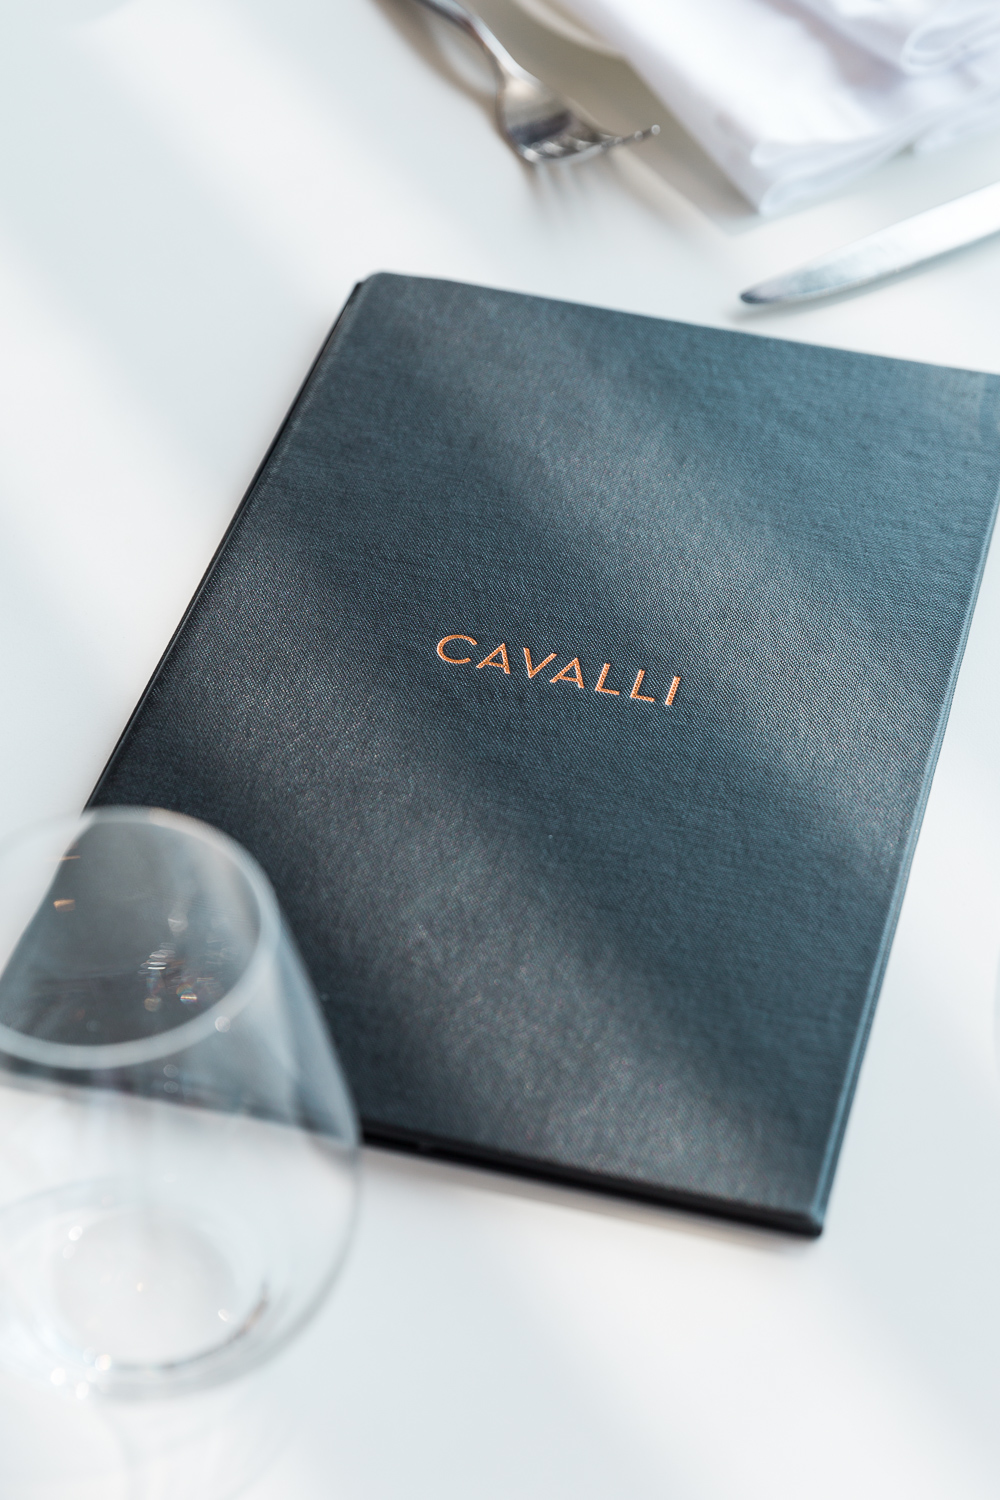 Experiencing ONE at Cavalli Estate